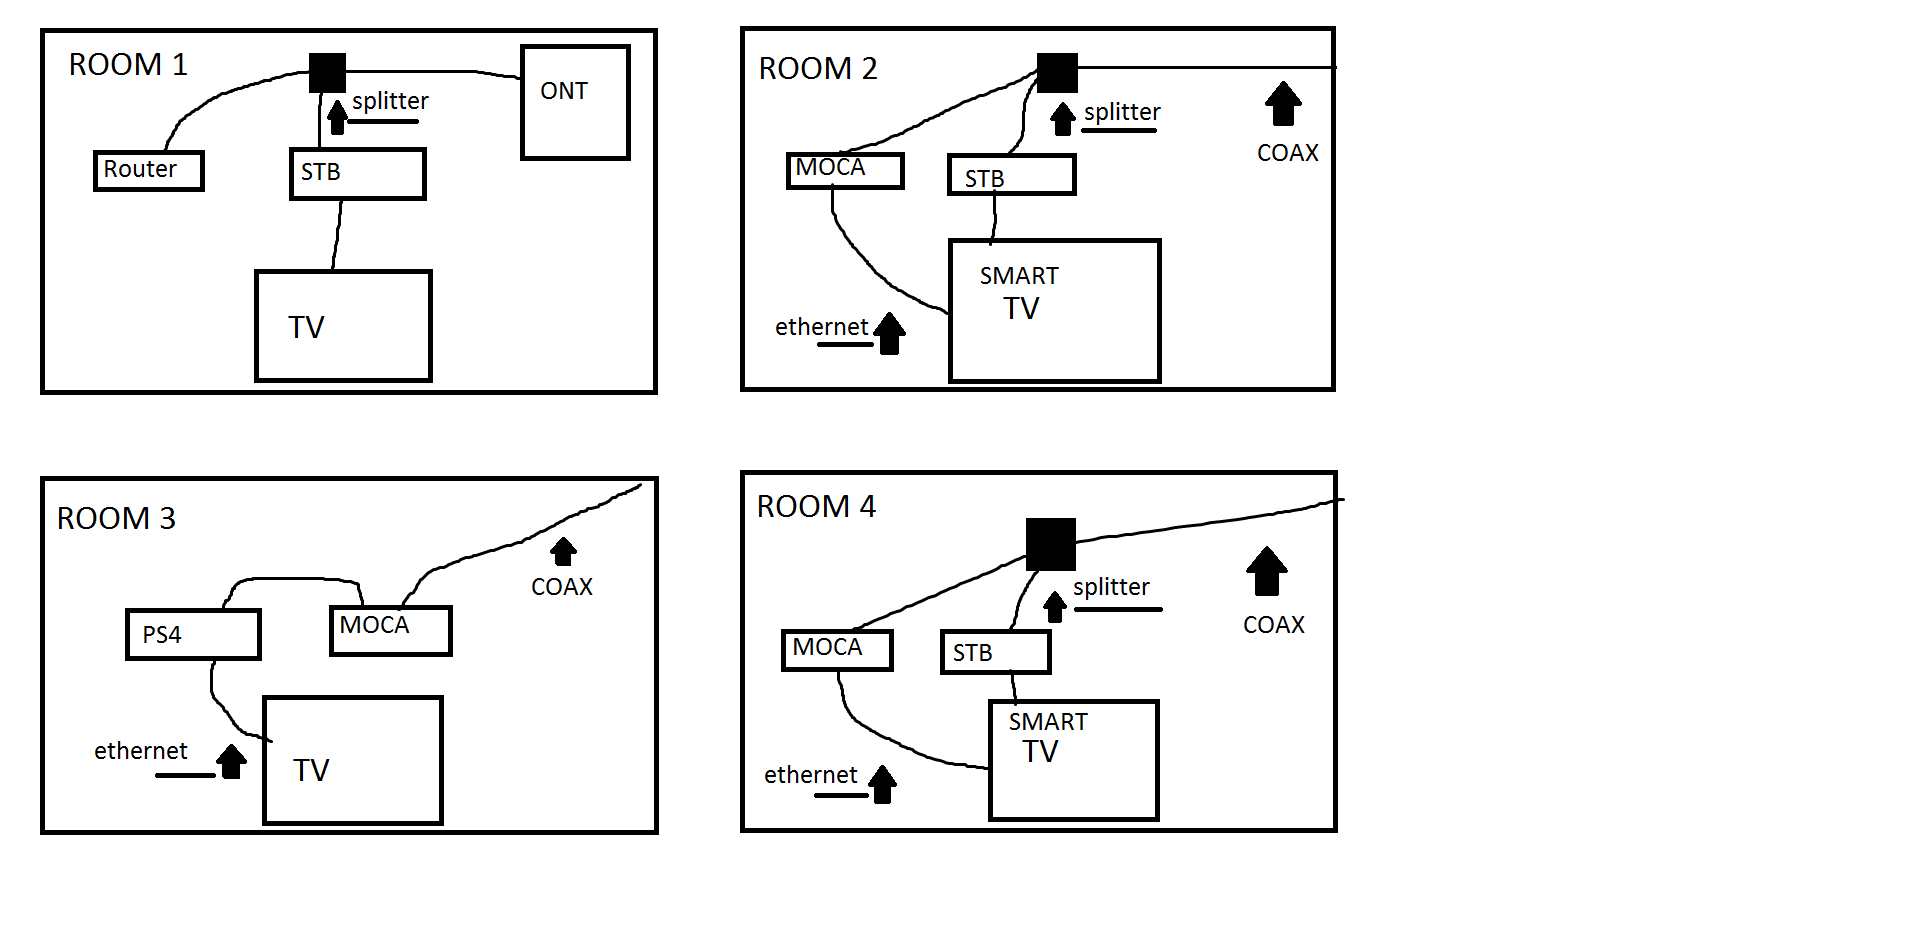 Samsung Tv Ir Wiring Diagram as well B000066E6Y likewise Satellite Dish Wiring Diagram moreover Joey Wiring Diagram besides Dishtv Wiring Diagram. on dish receiver hook up diagram